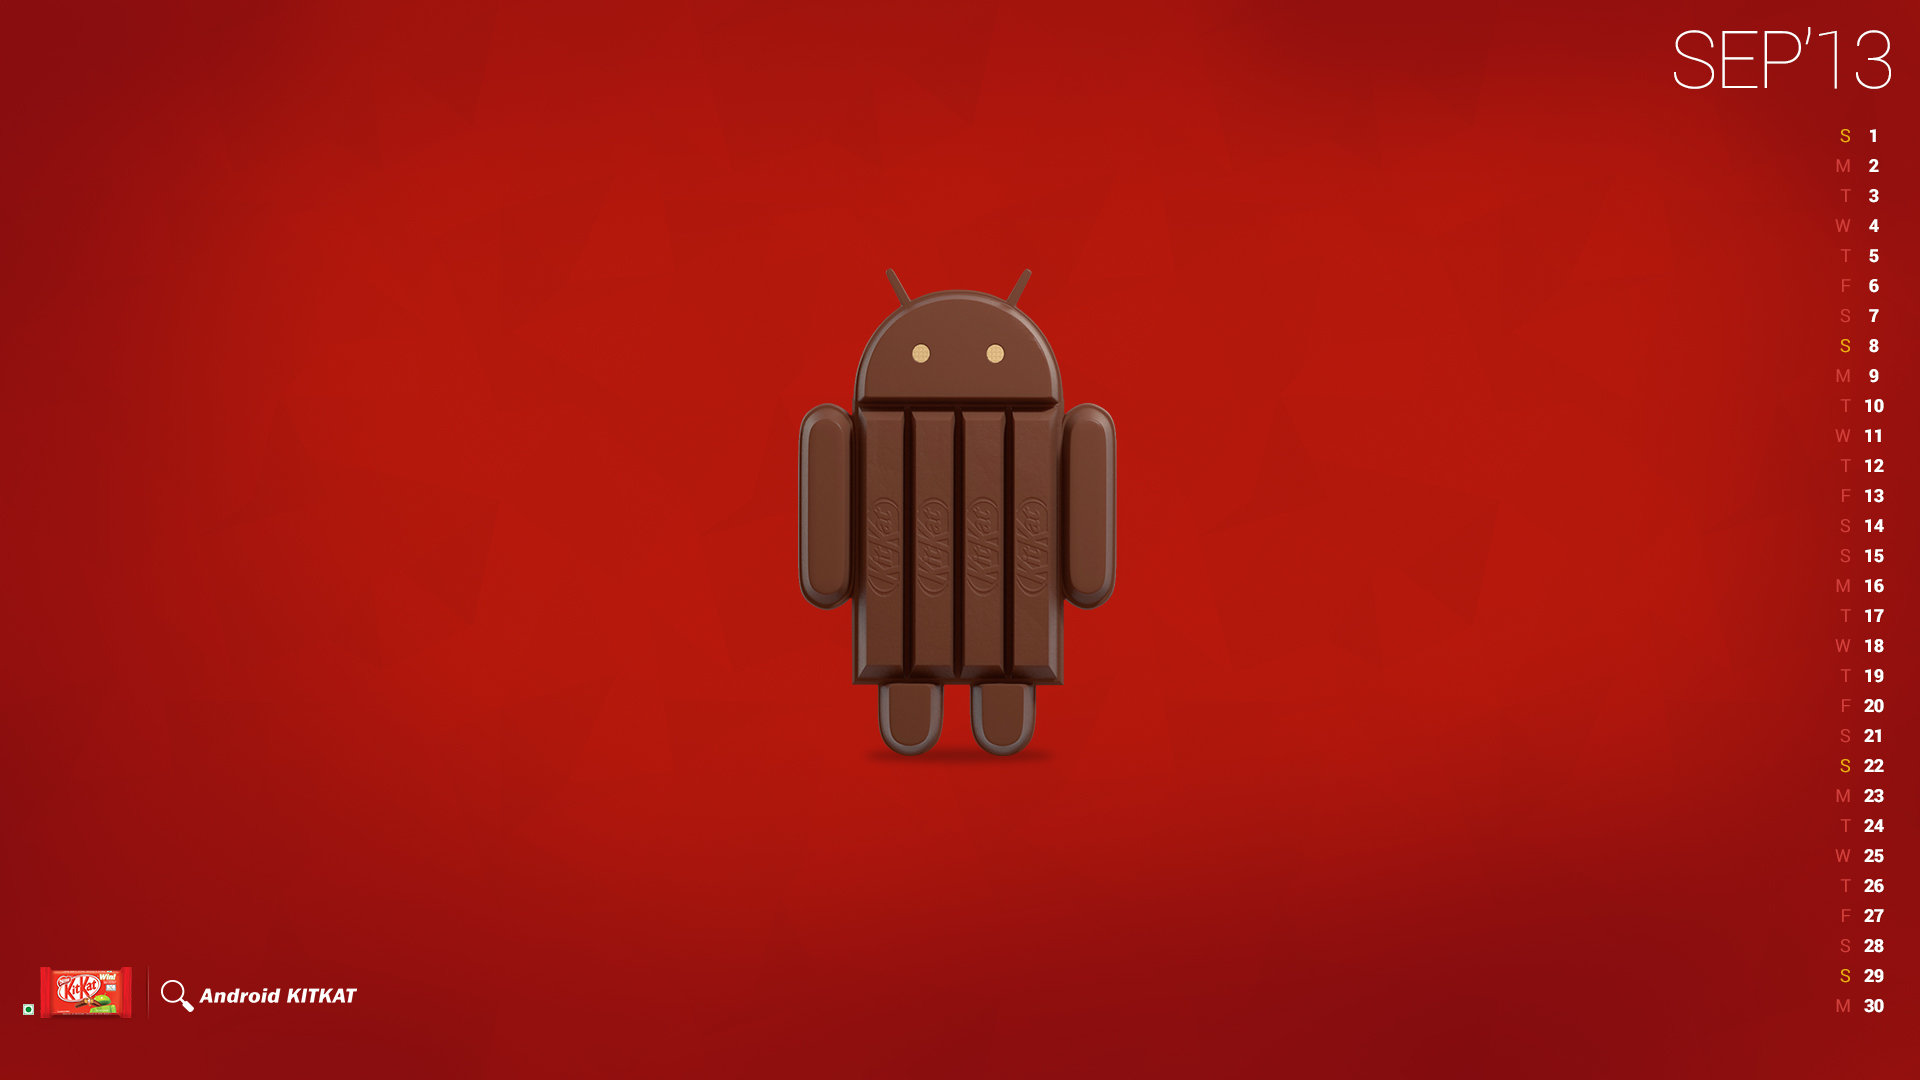 Android 44 kitkat wallpapers method of tried kitkatwall1 voltagebd Images